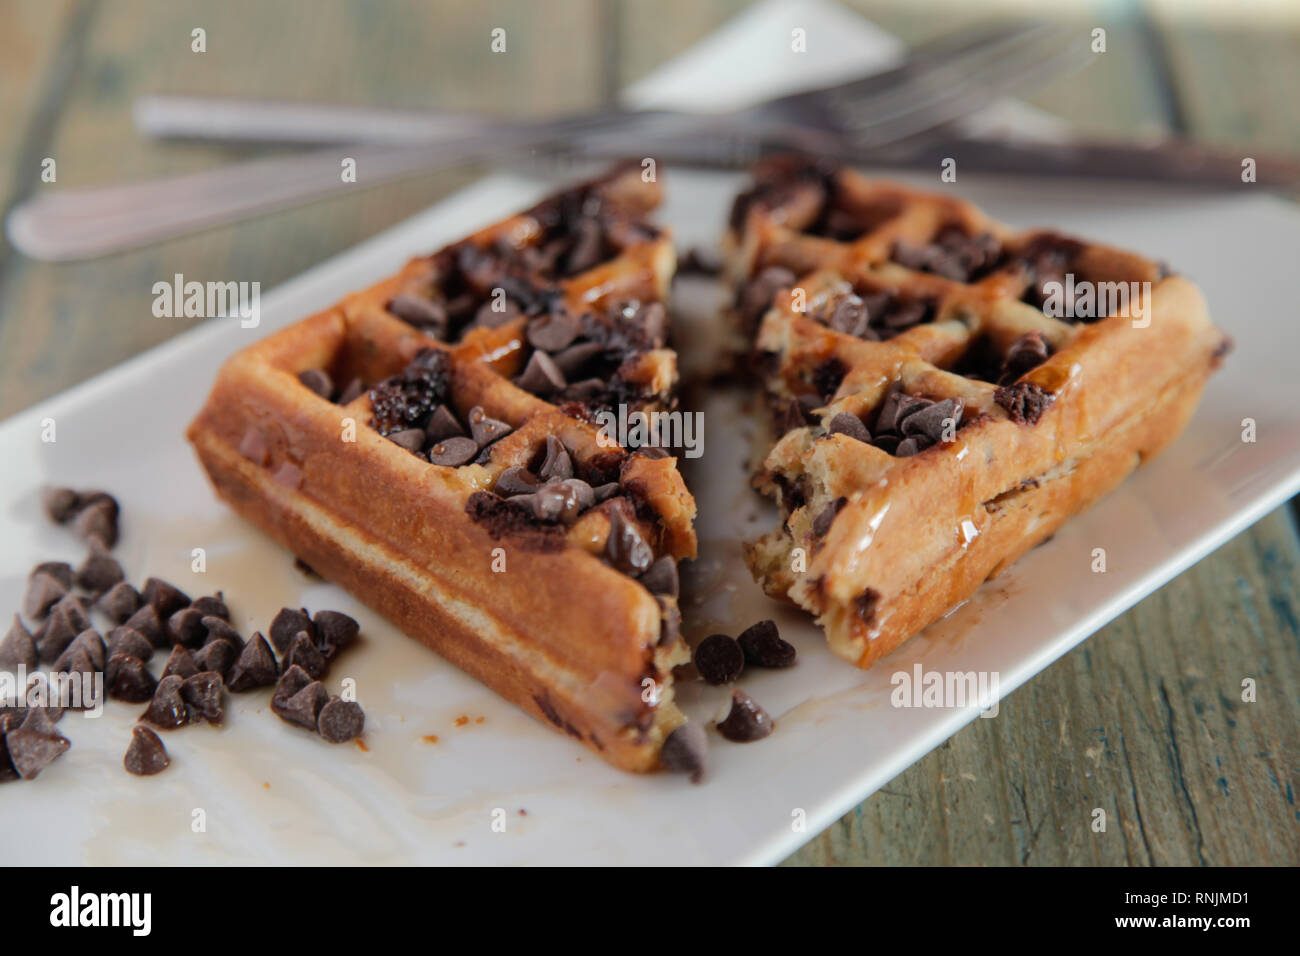 Chocolate Chip Waffle with whipped cream - Stock Image